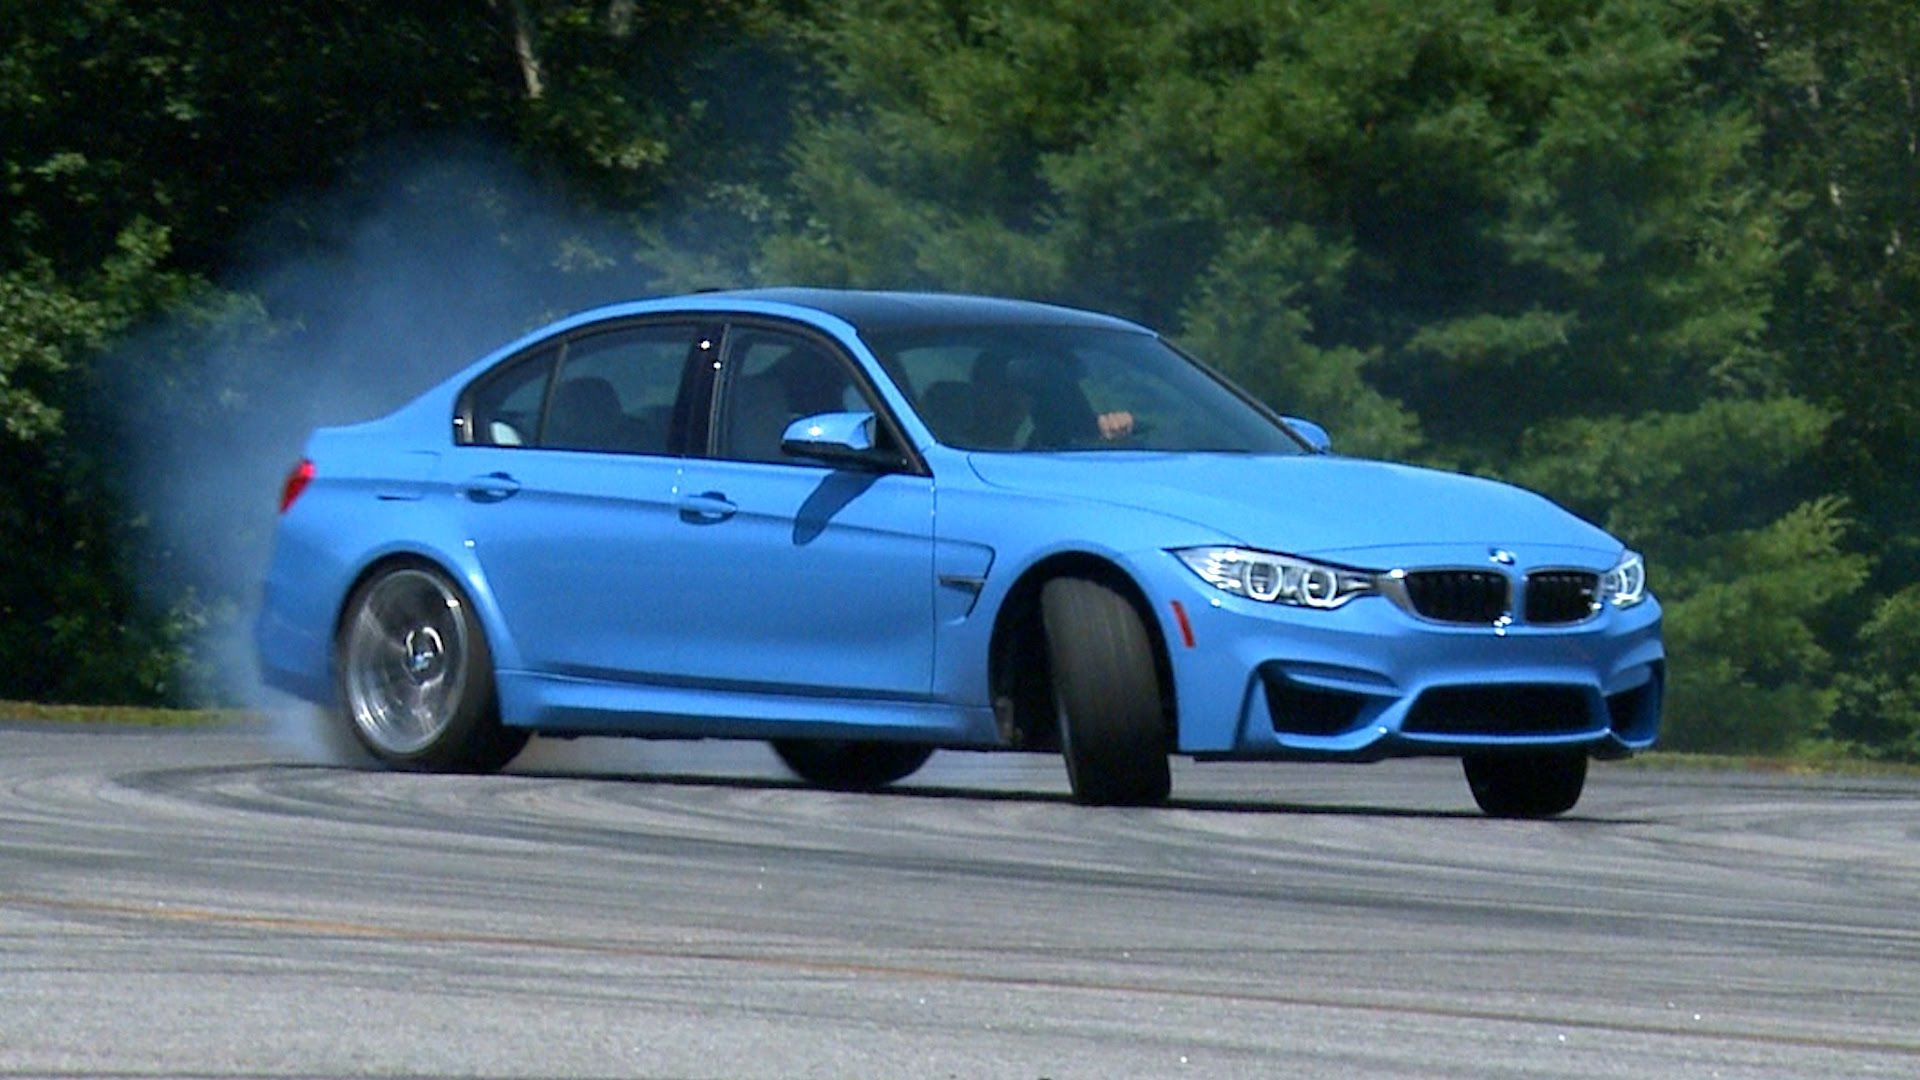 New BMW M And M Pops Up Early Transportation Pinterest BMW - 2015 bmw m3 price